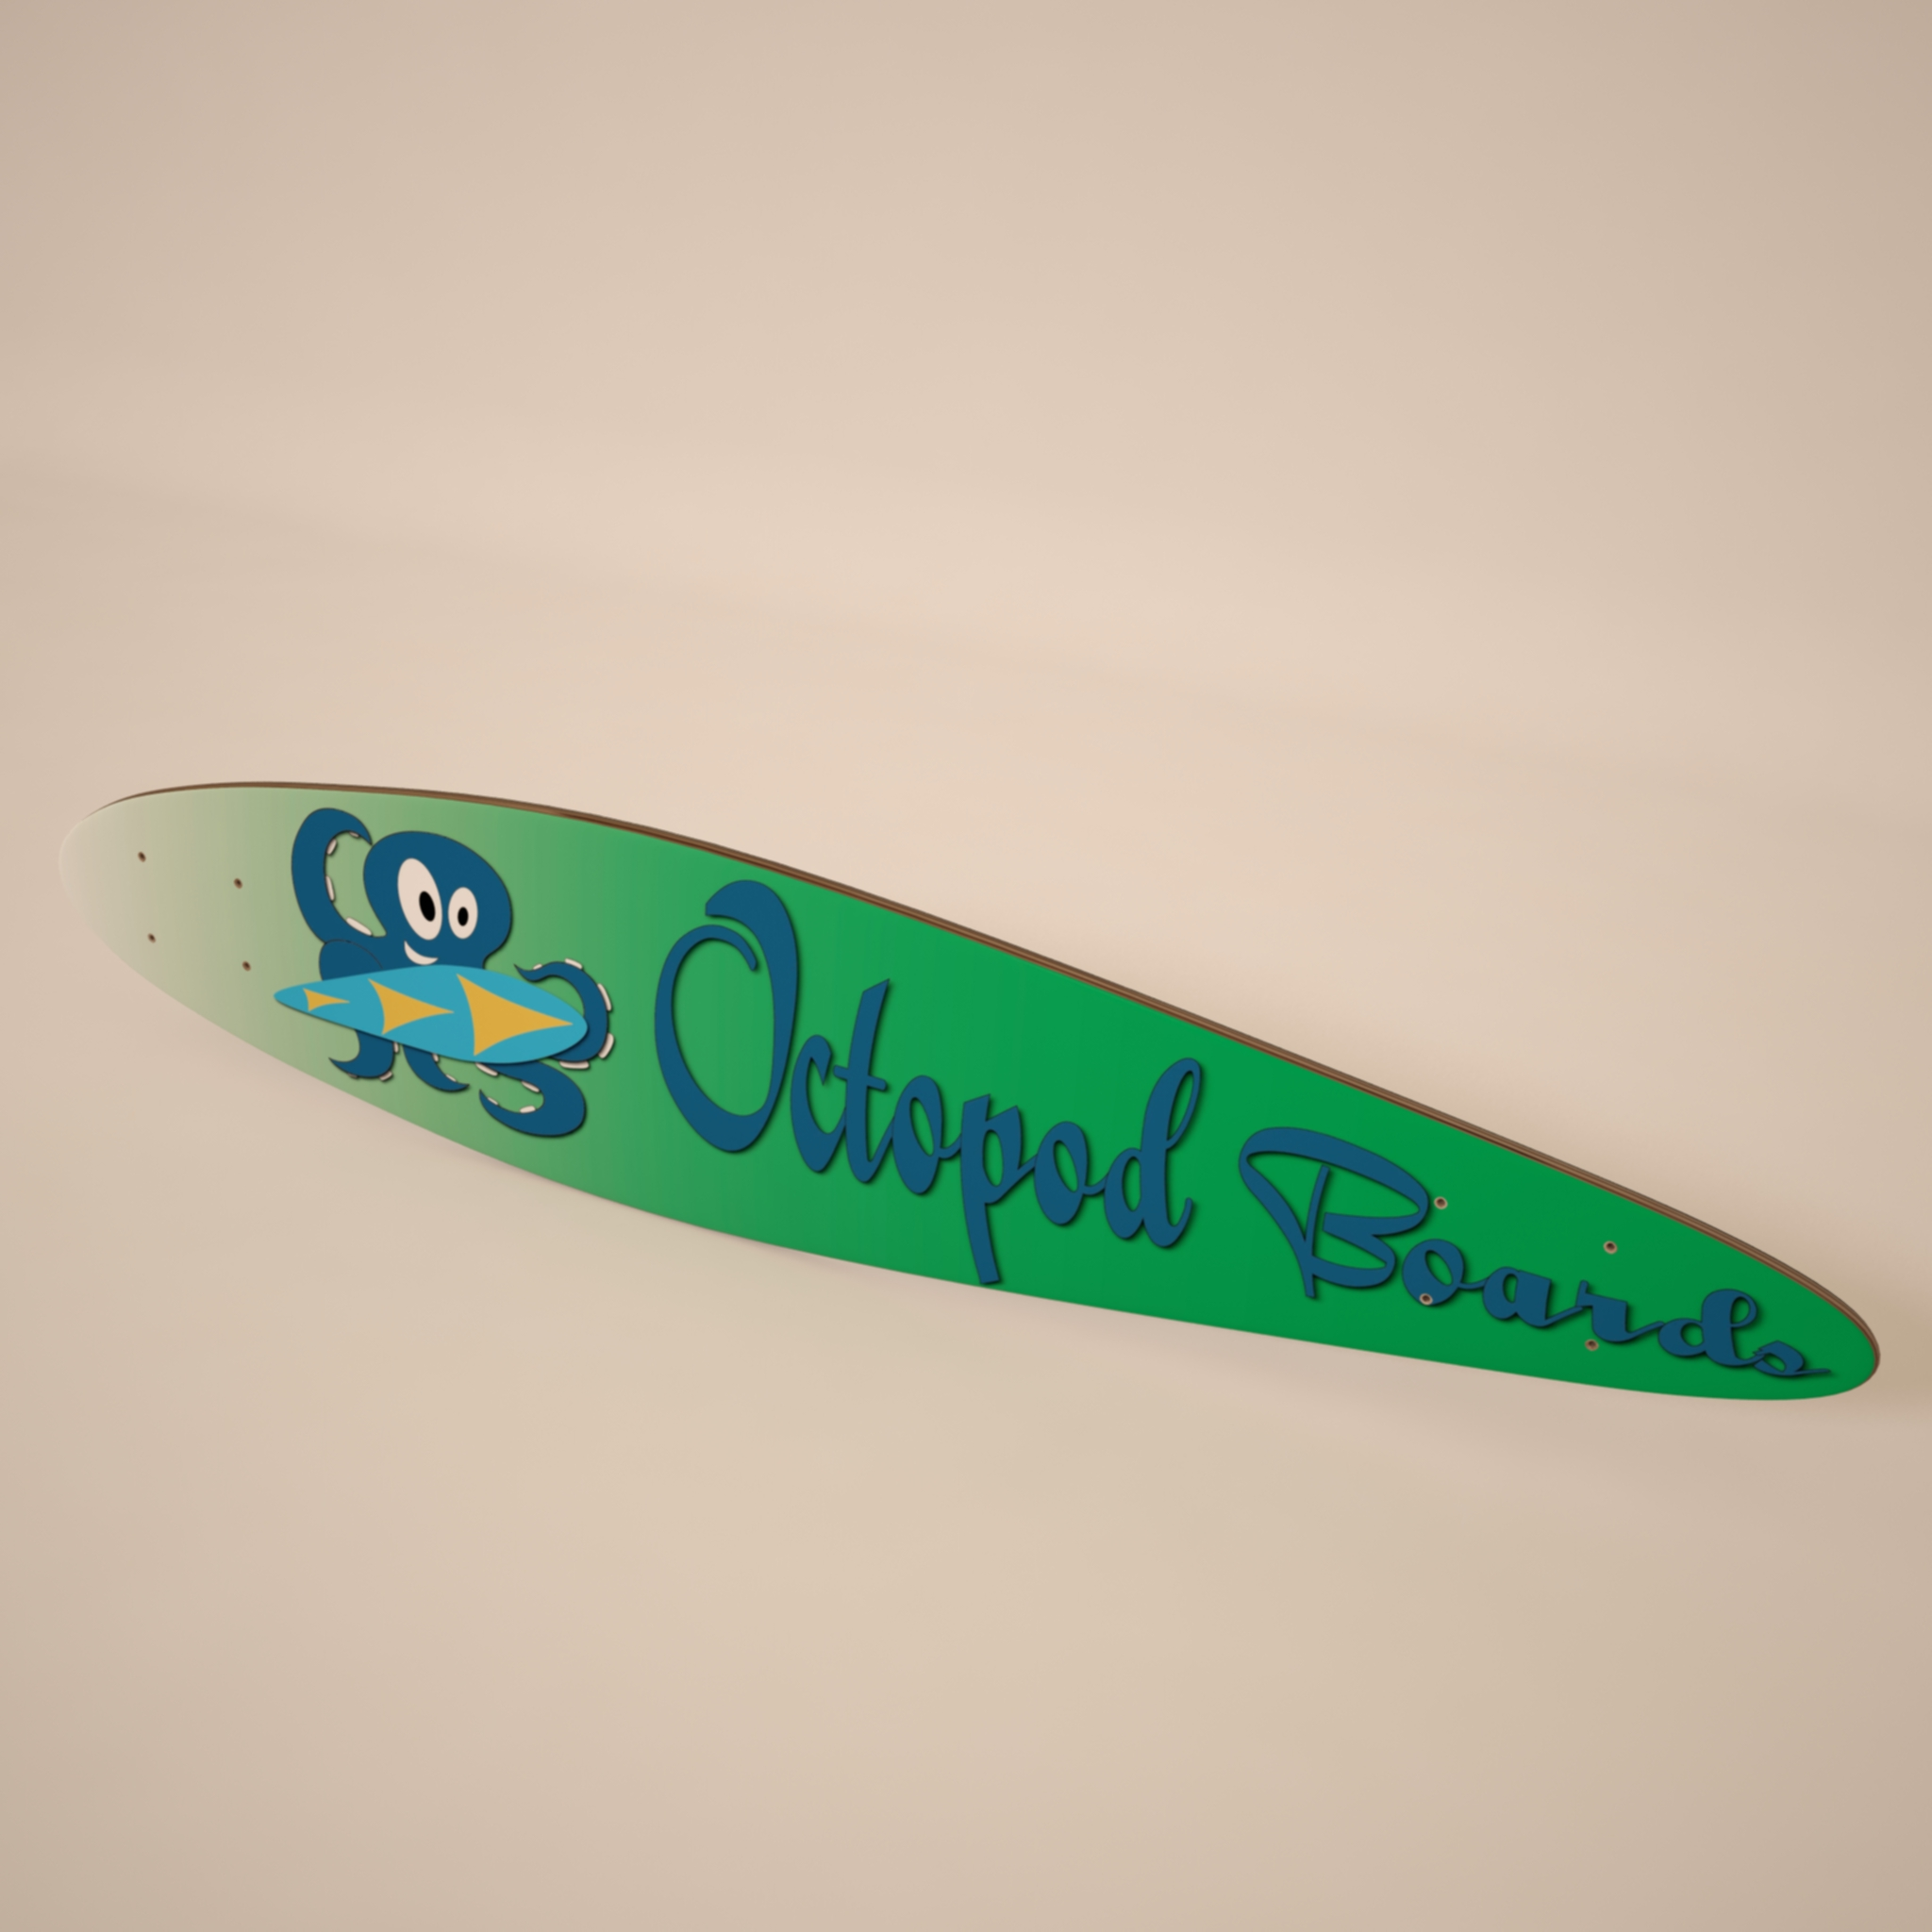 longboard güvertə 3d model max 214793